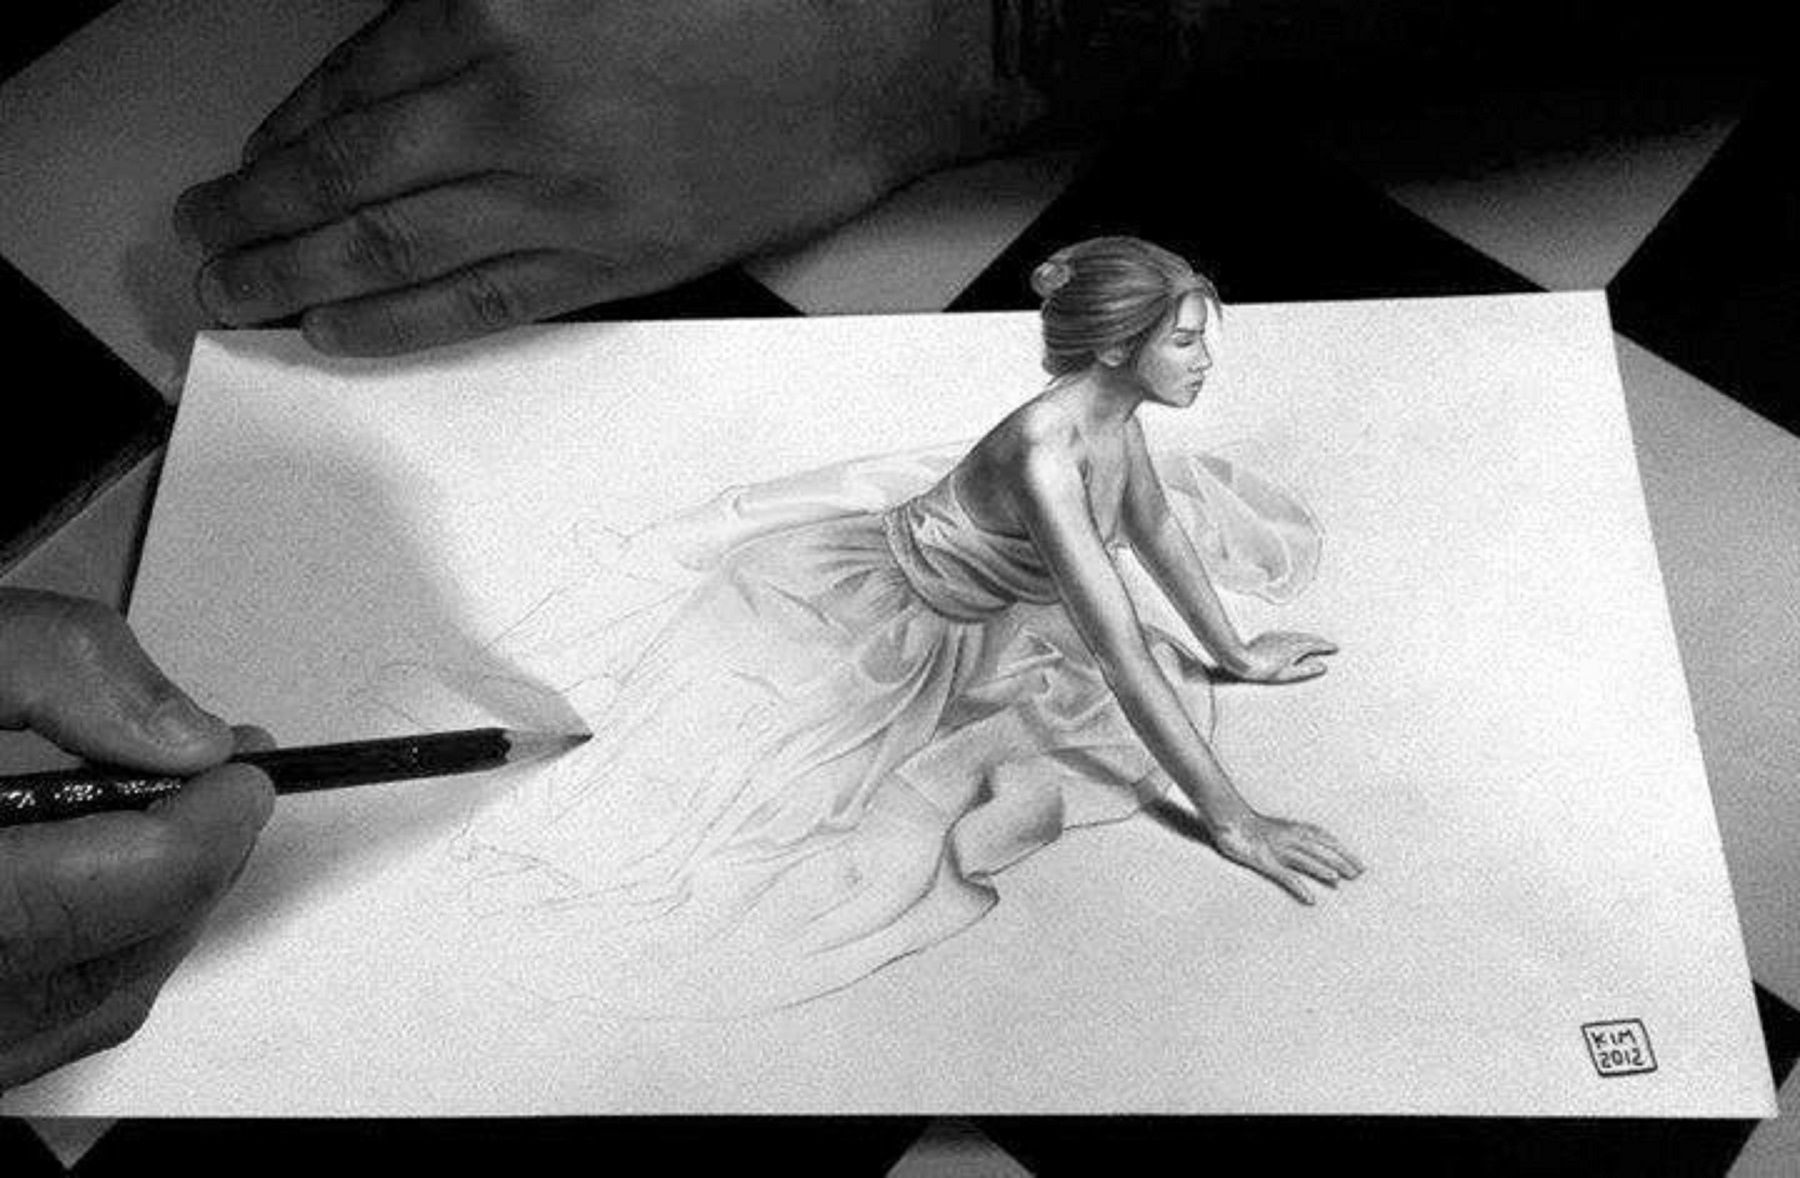 3d sketch art sketches 3d pencil art 3d pencil drawings pencil sketching